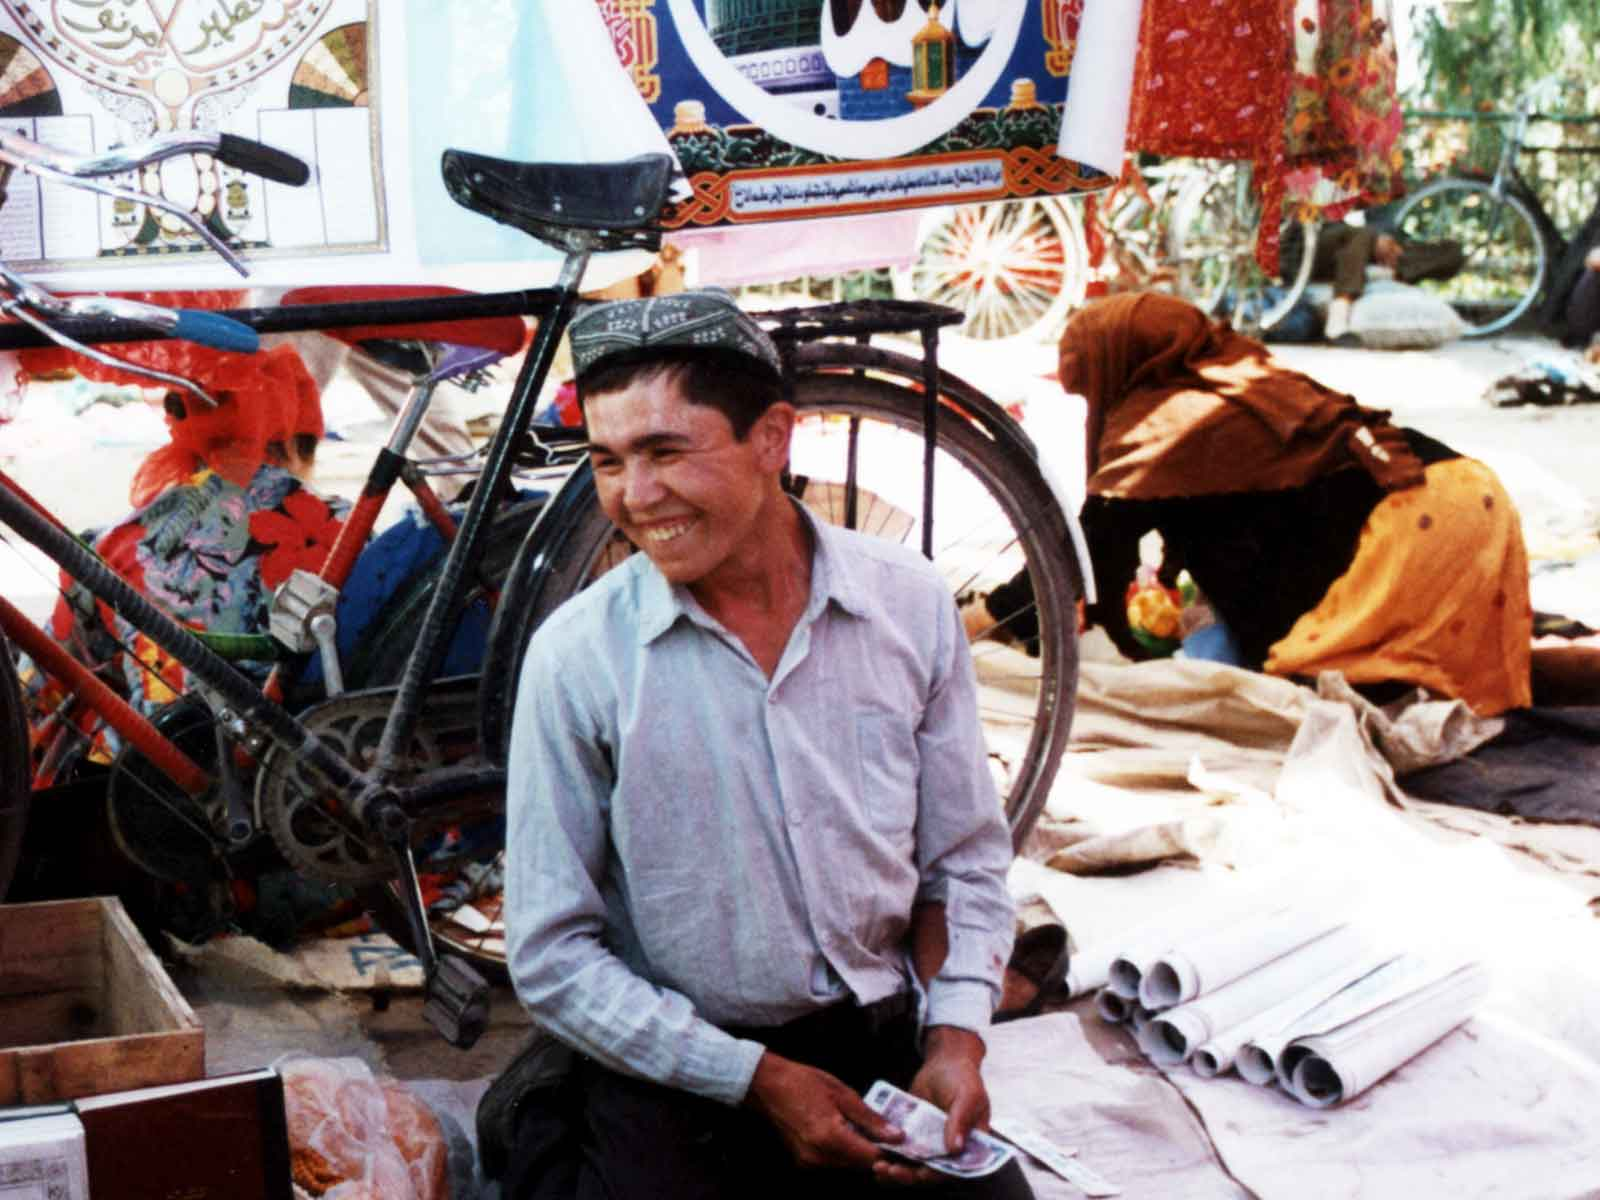 Islamic culture - Silk Road China Photo Journal - Steven Andrew Martin - International Trade Market of Central and Western Asia